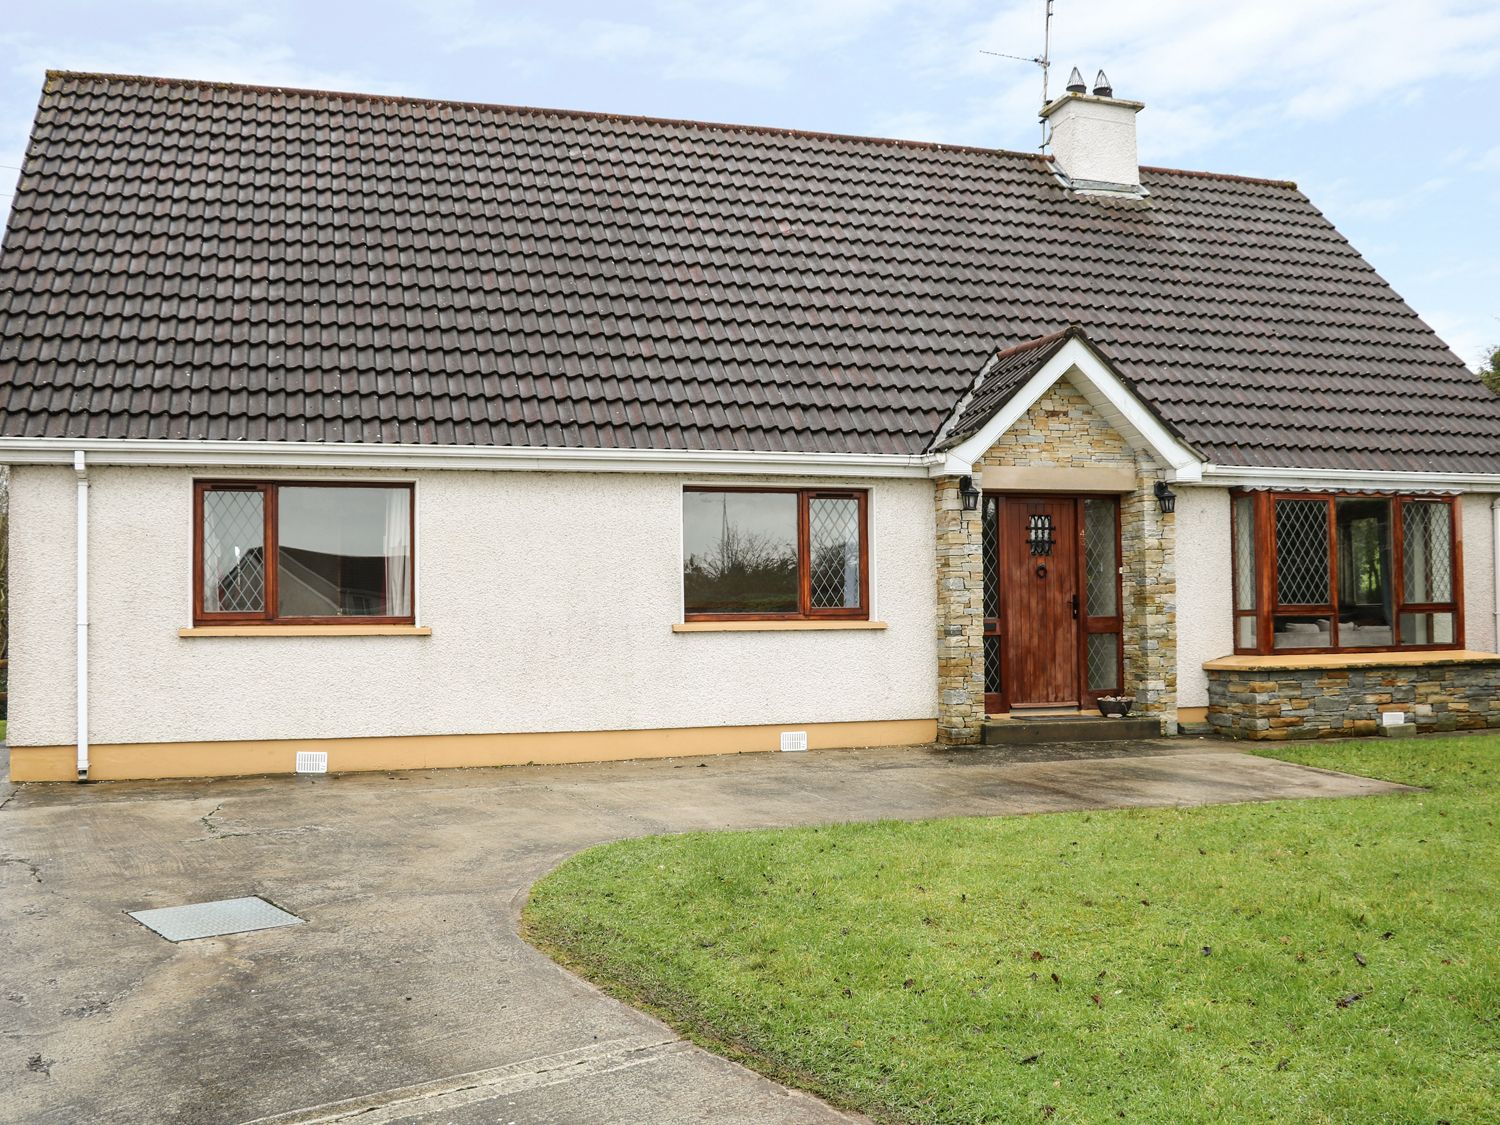 43 Rosebank Court - County Donegal - 970525 - photo 1